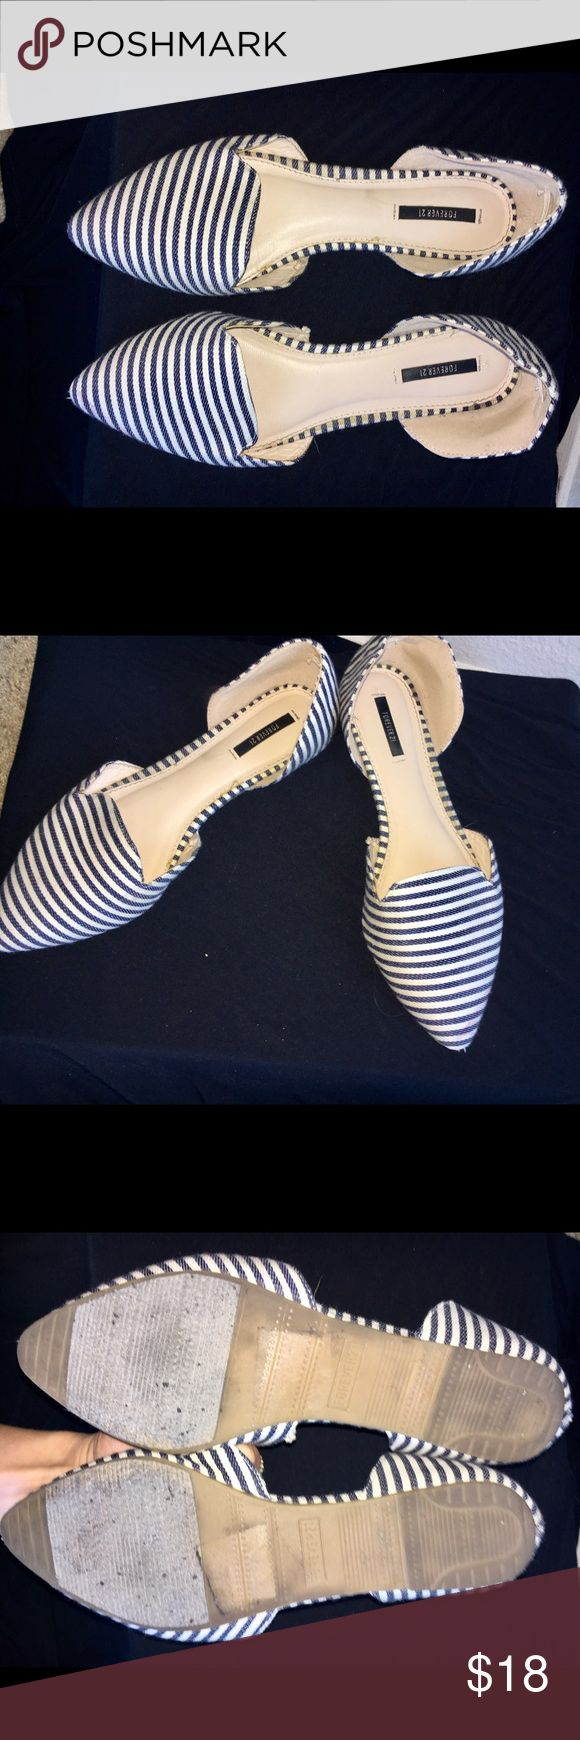 Forever 21 Nautical Blue and White Flats Nautical Blue and White Striped Flats from Forever 21 . Size 8. Hardly ever worn! Forever 21 Shoes Flats & Loafers